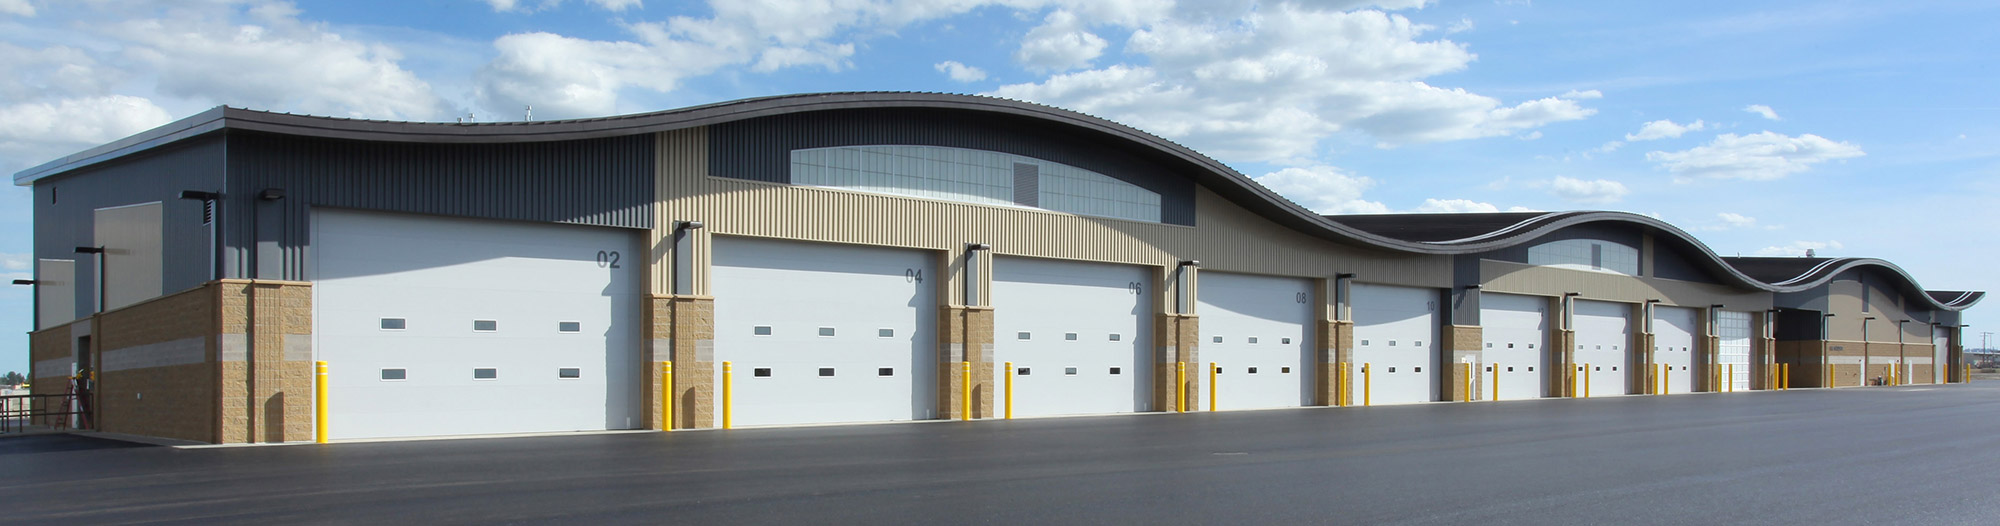 doors in commercial and bismarck mandan area surrounding door garage